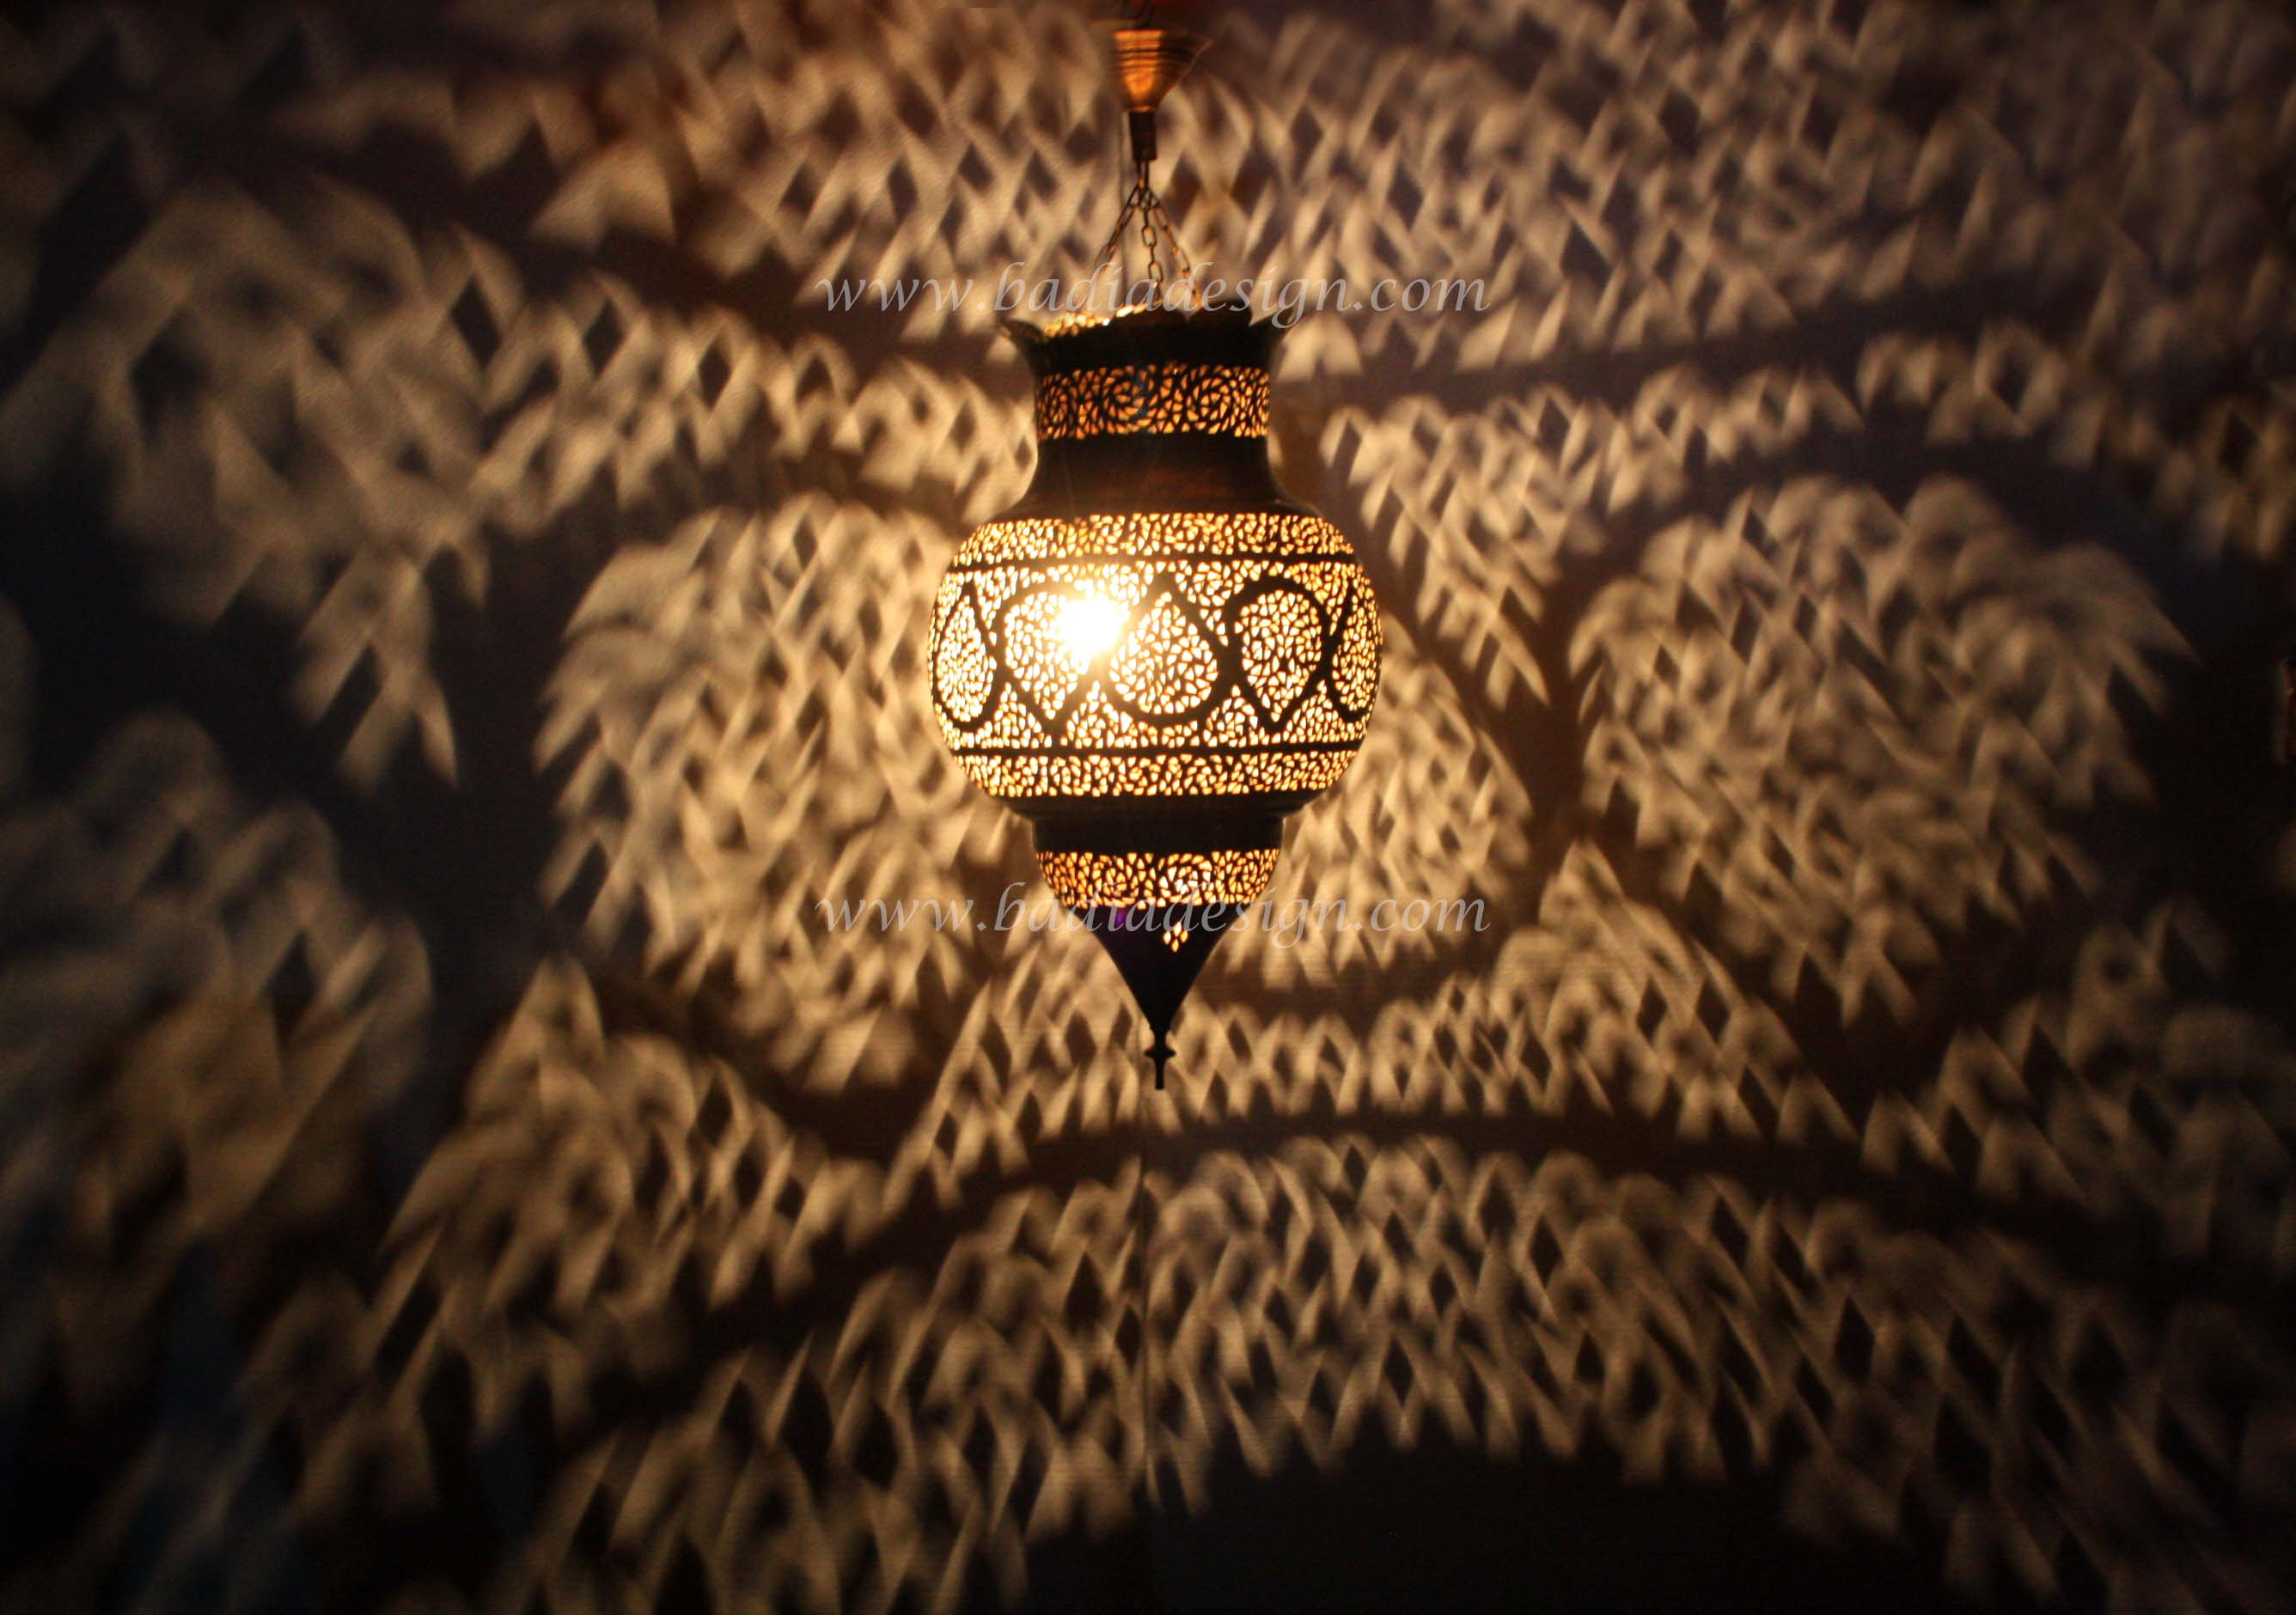 moroccan-hand-punched-brass-lantern-lig189-1.jpg